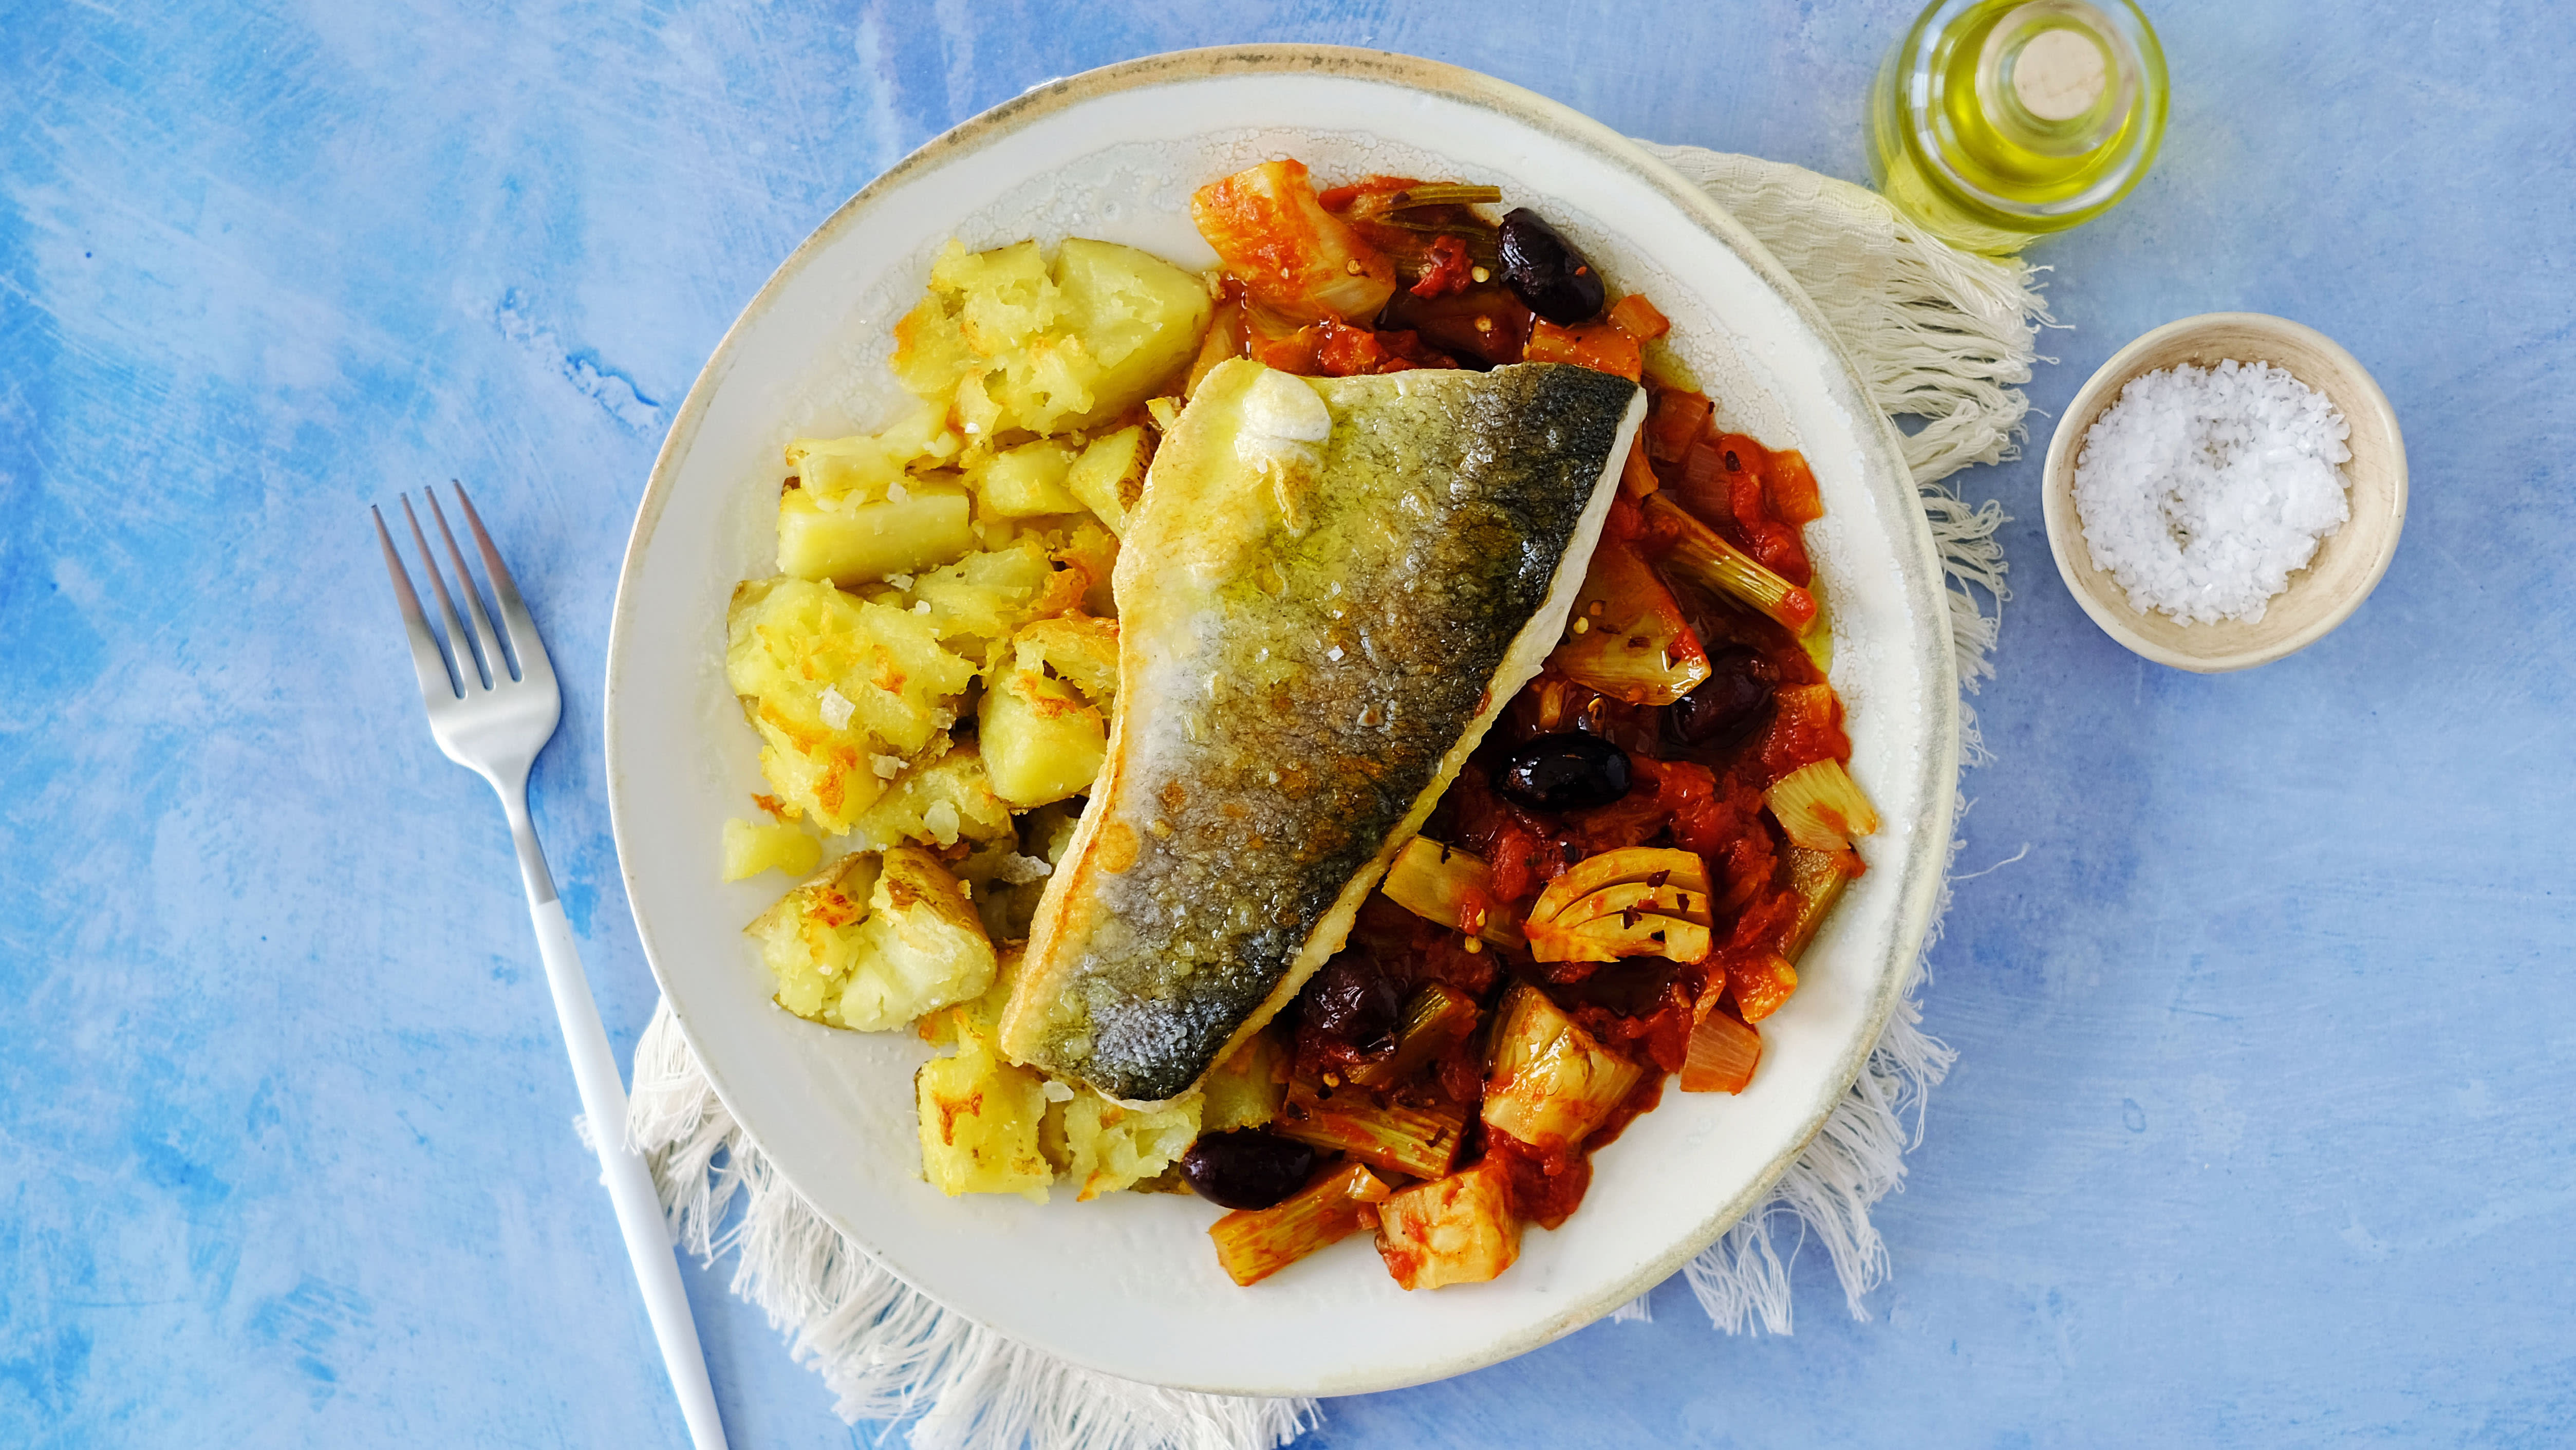 Sea bass with Mediterranean Fennel and Tomato Stew and Crushed Potatoes